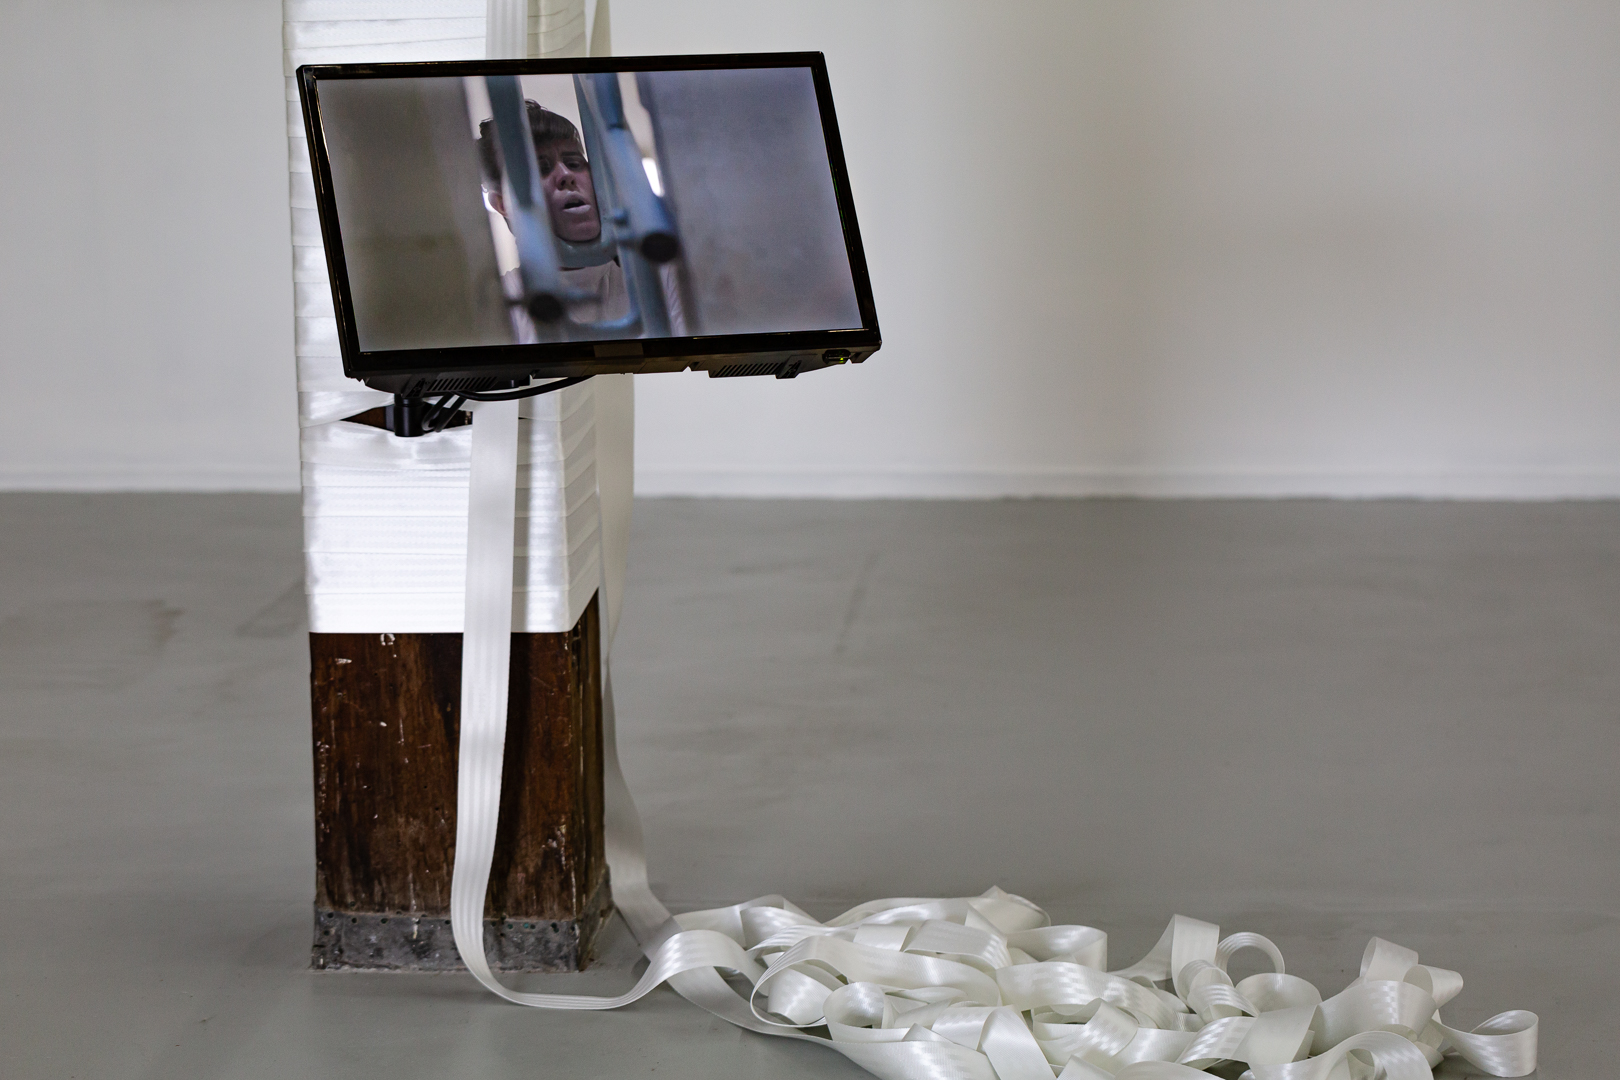 Kate Brown, 'This is a ghost voice', 2020